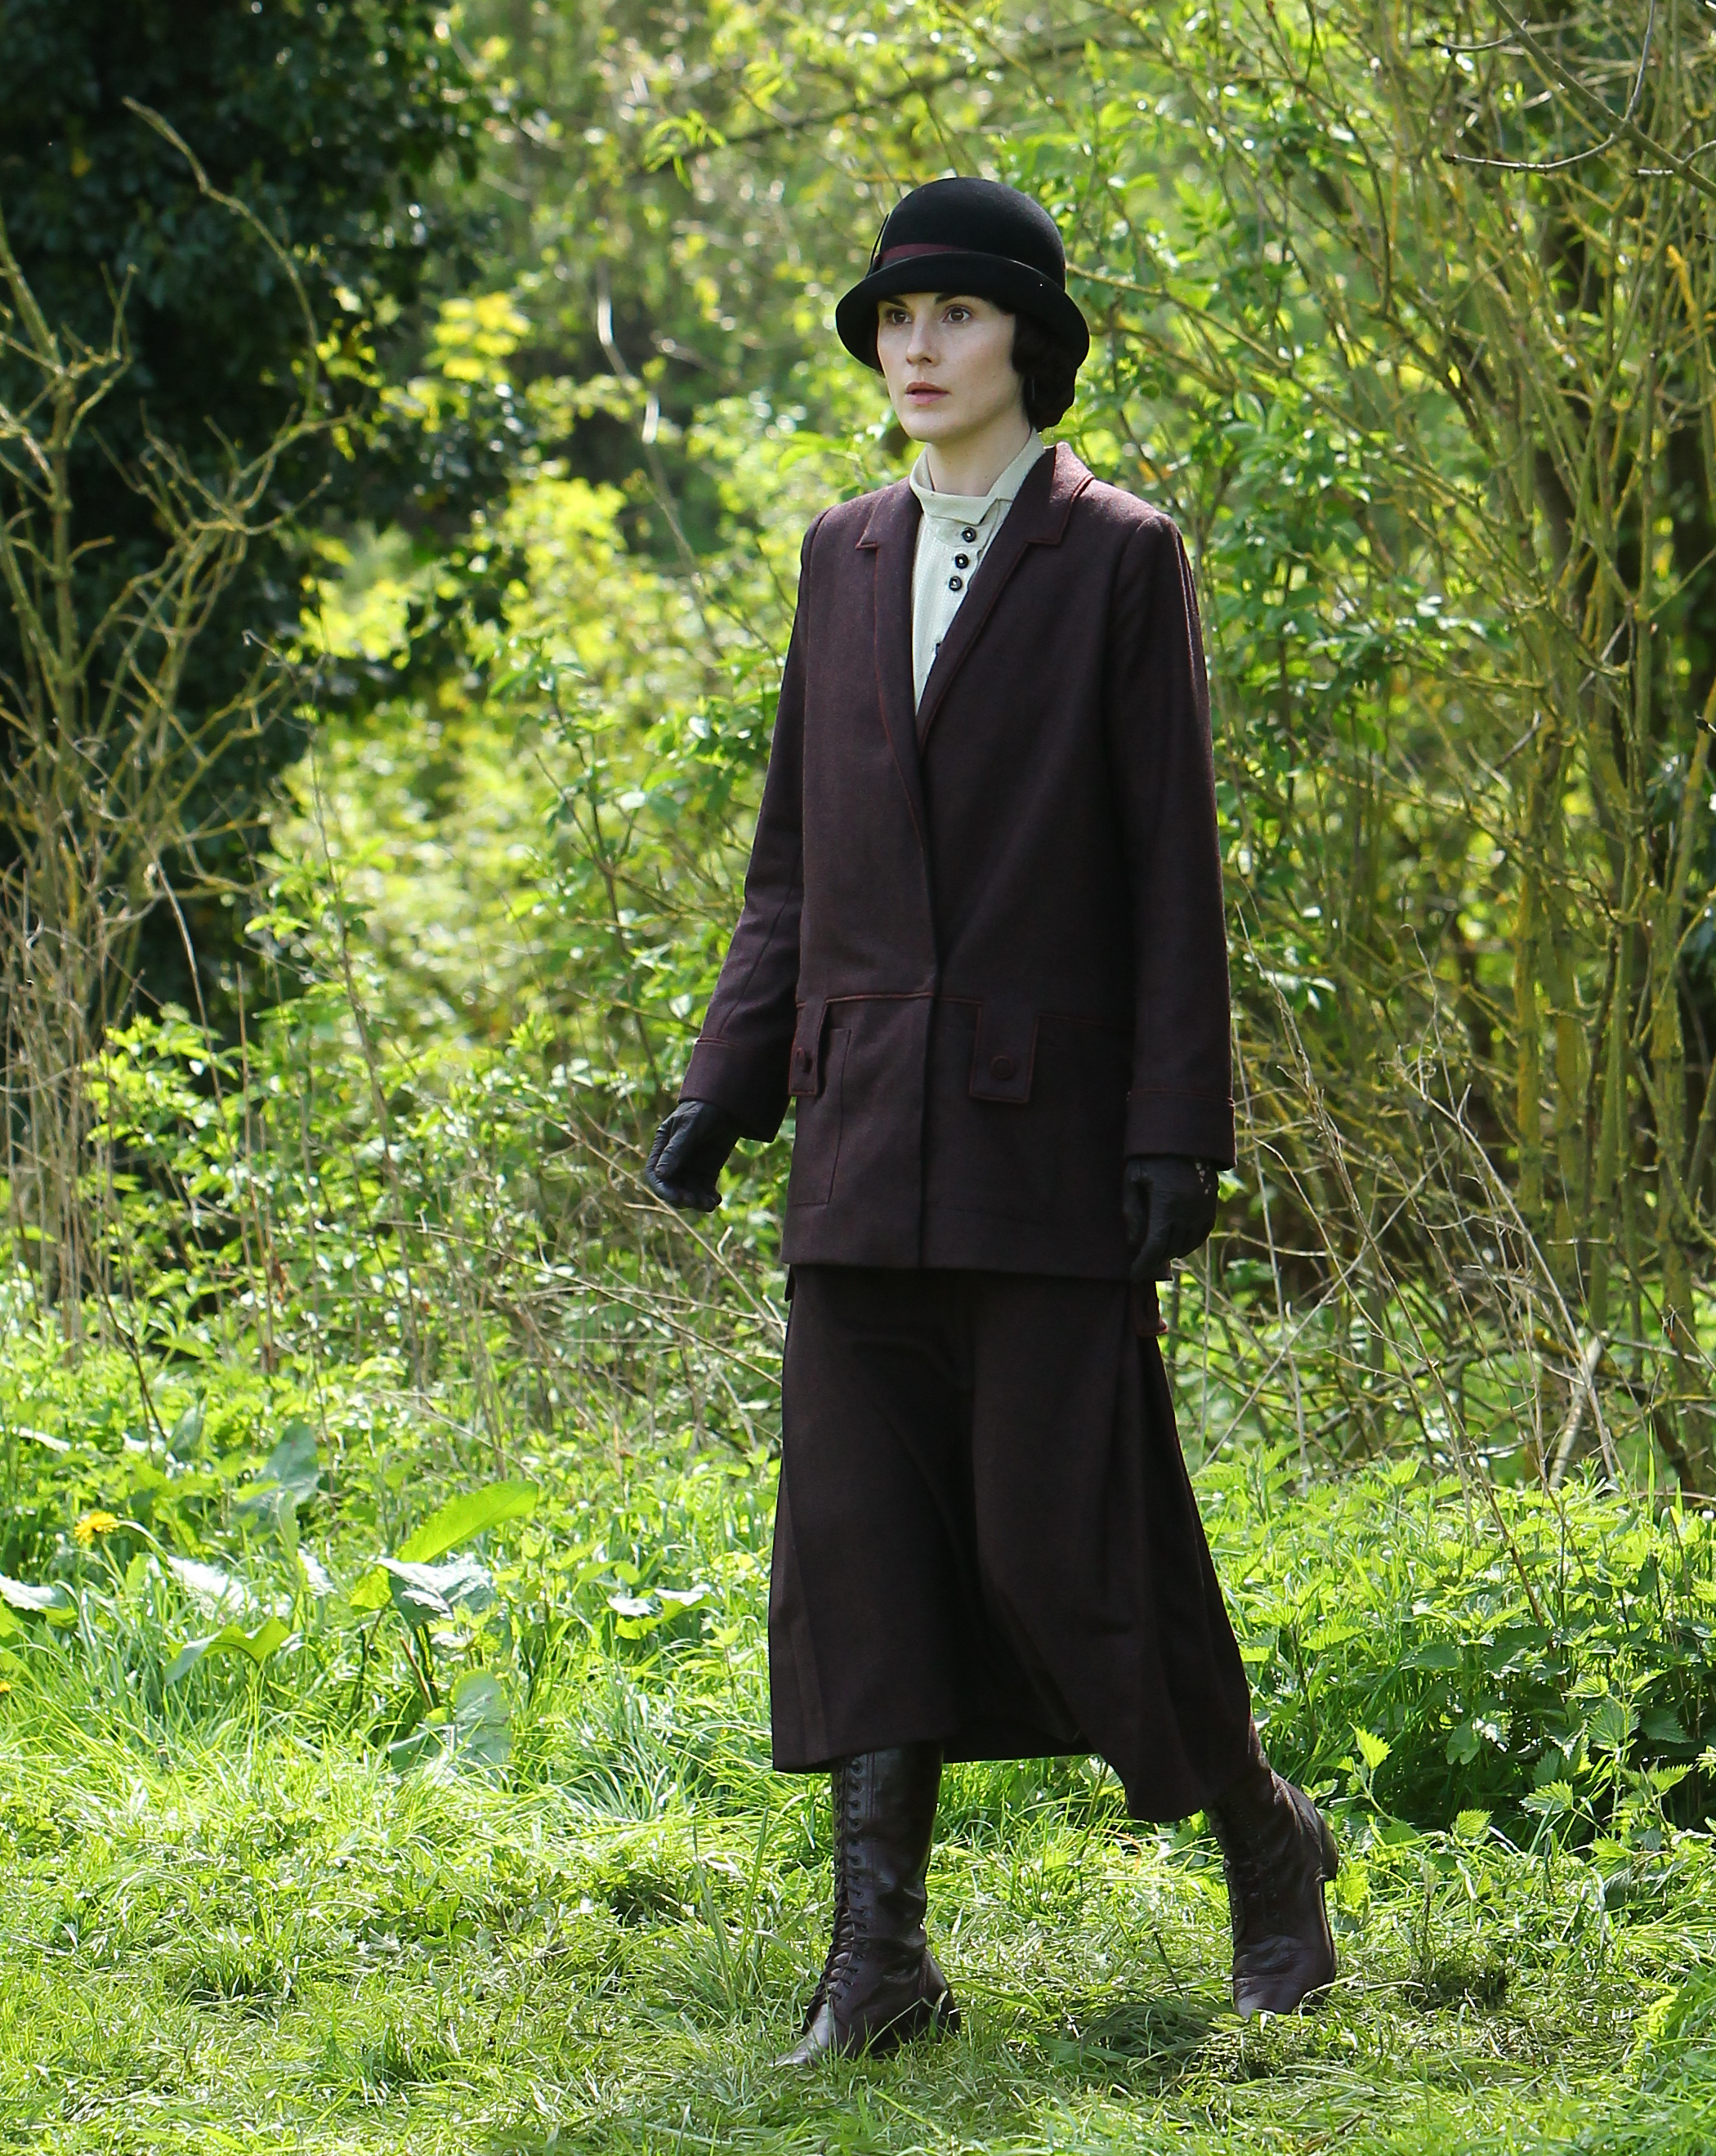 4. Lady Mary Crawley gave her the travel bug